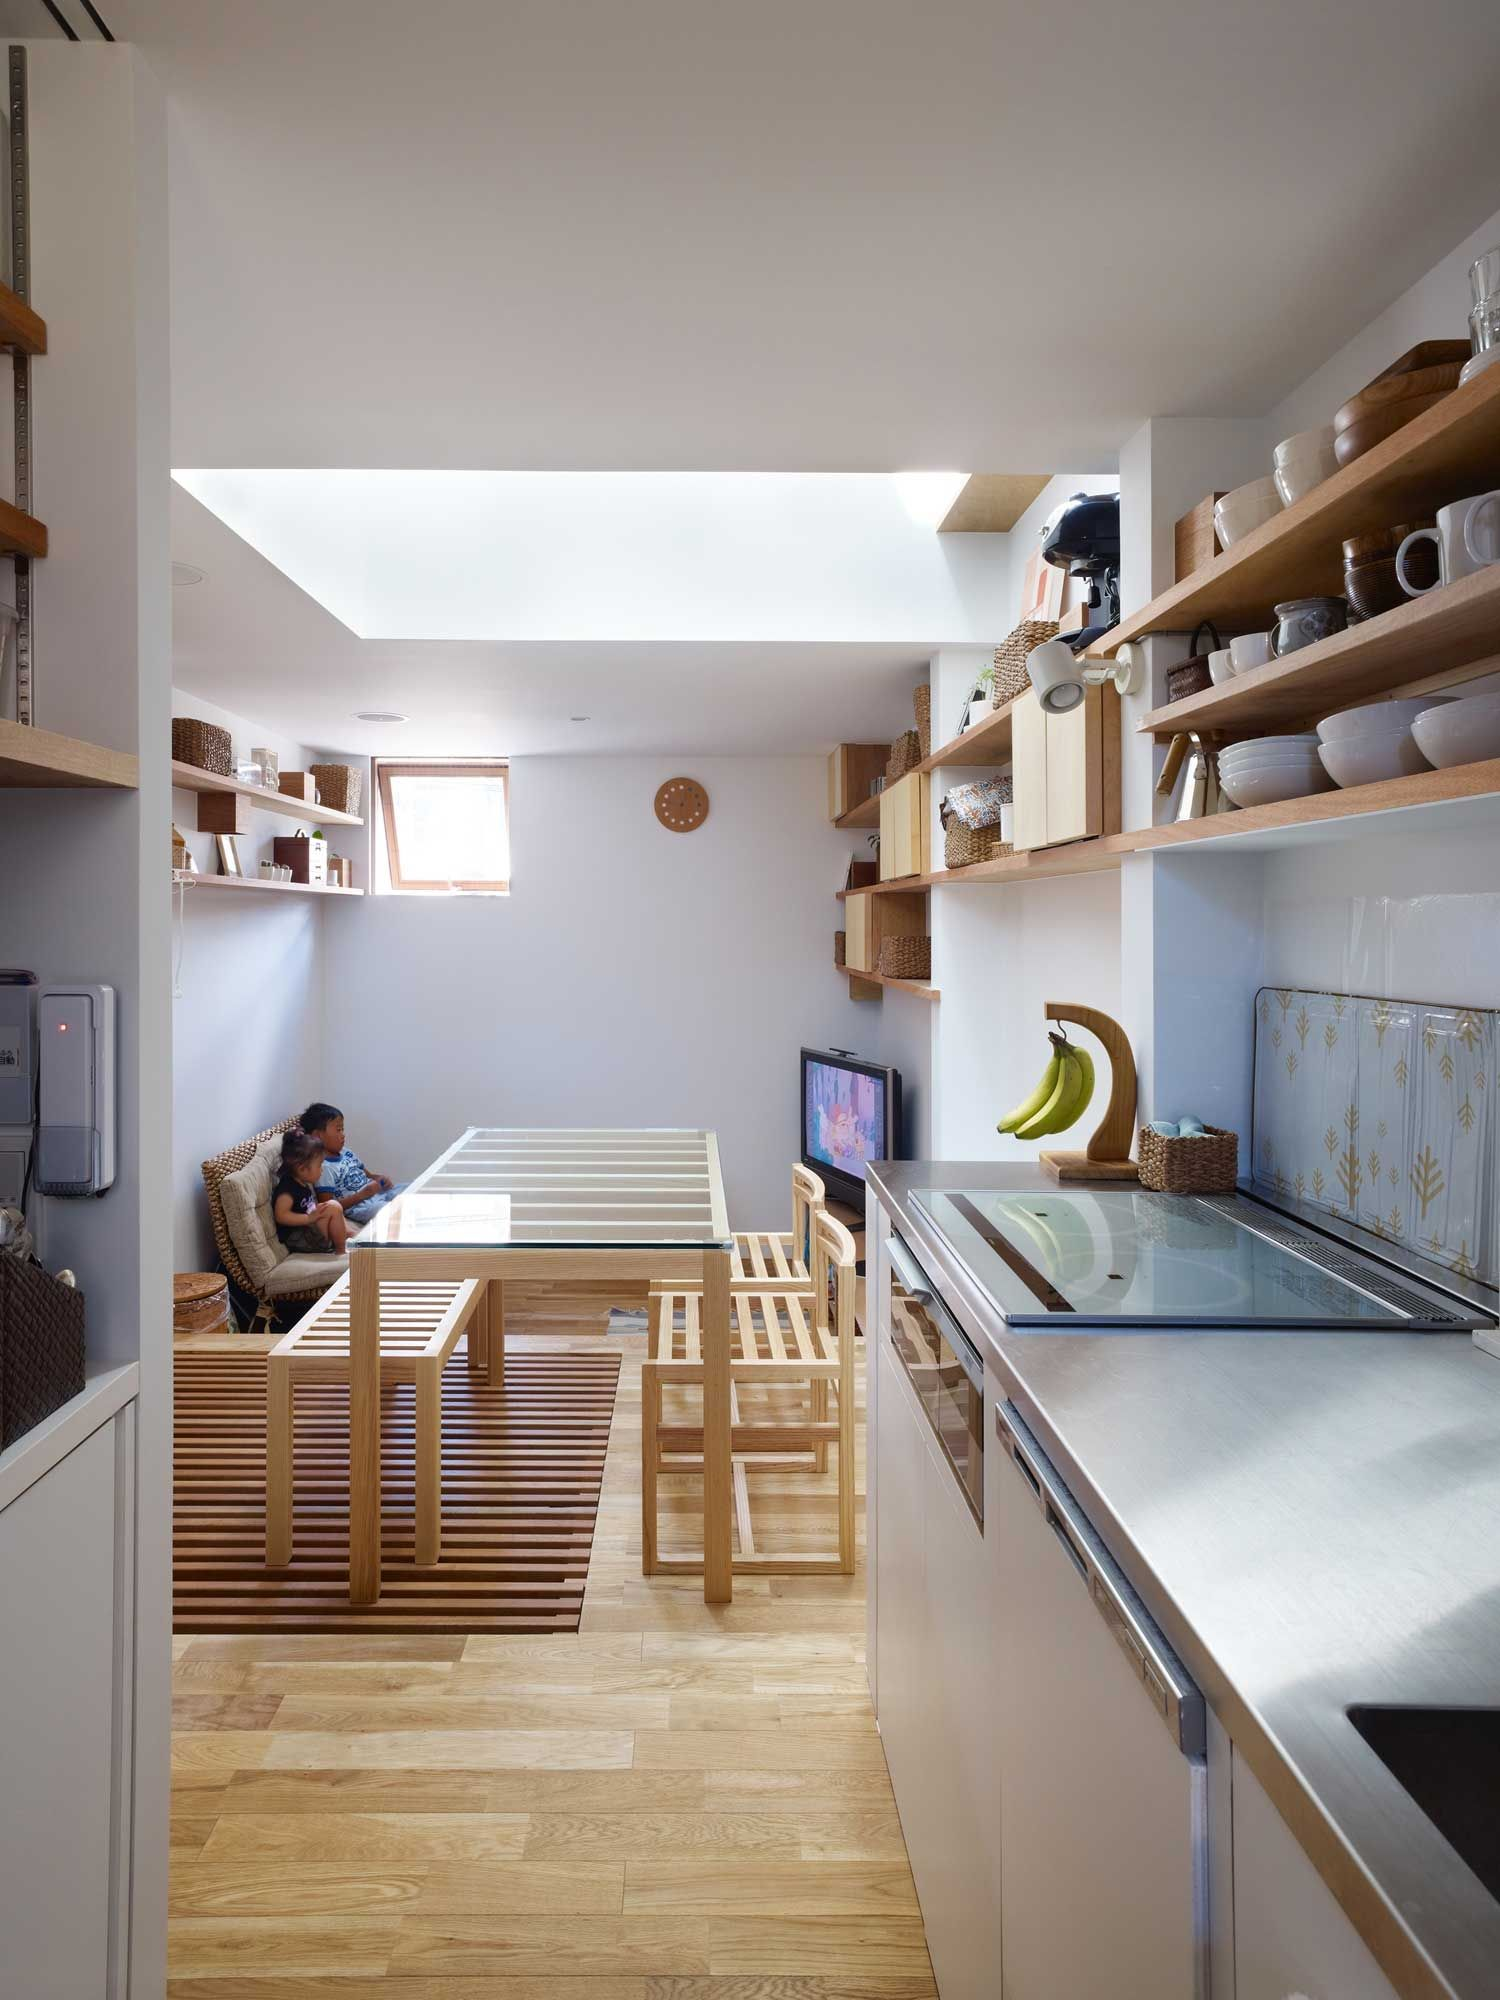 small kitchen - japanese minimalist inside a tiny house in nada